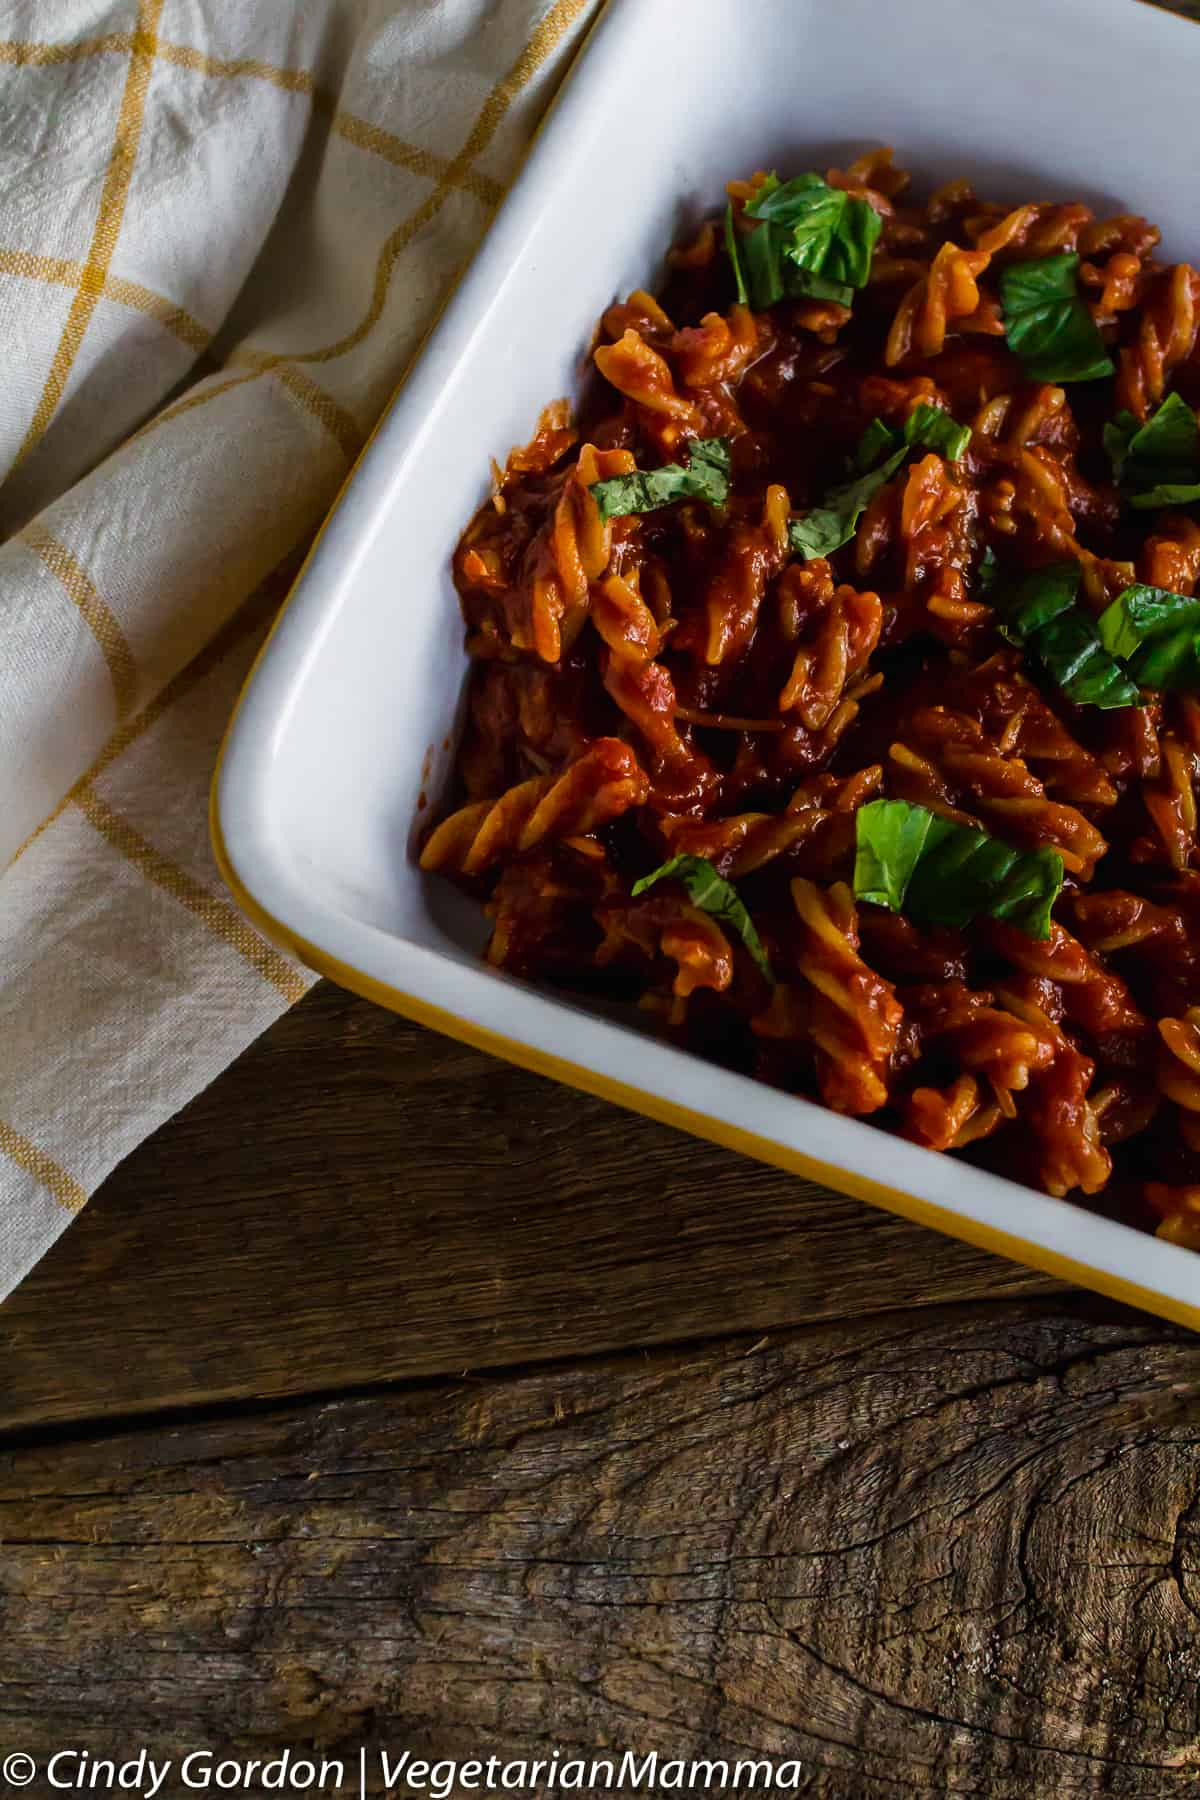 pasta coated in red sauce and topped with chopped bright green basil in a casserole dish on a wooden background